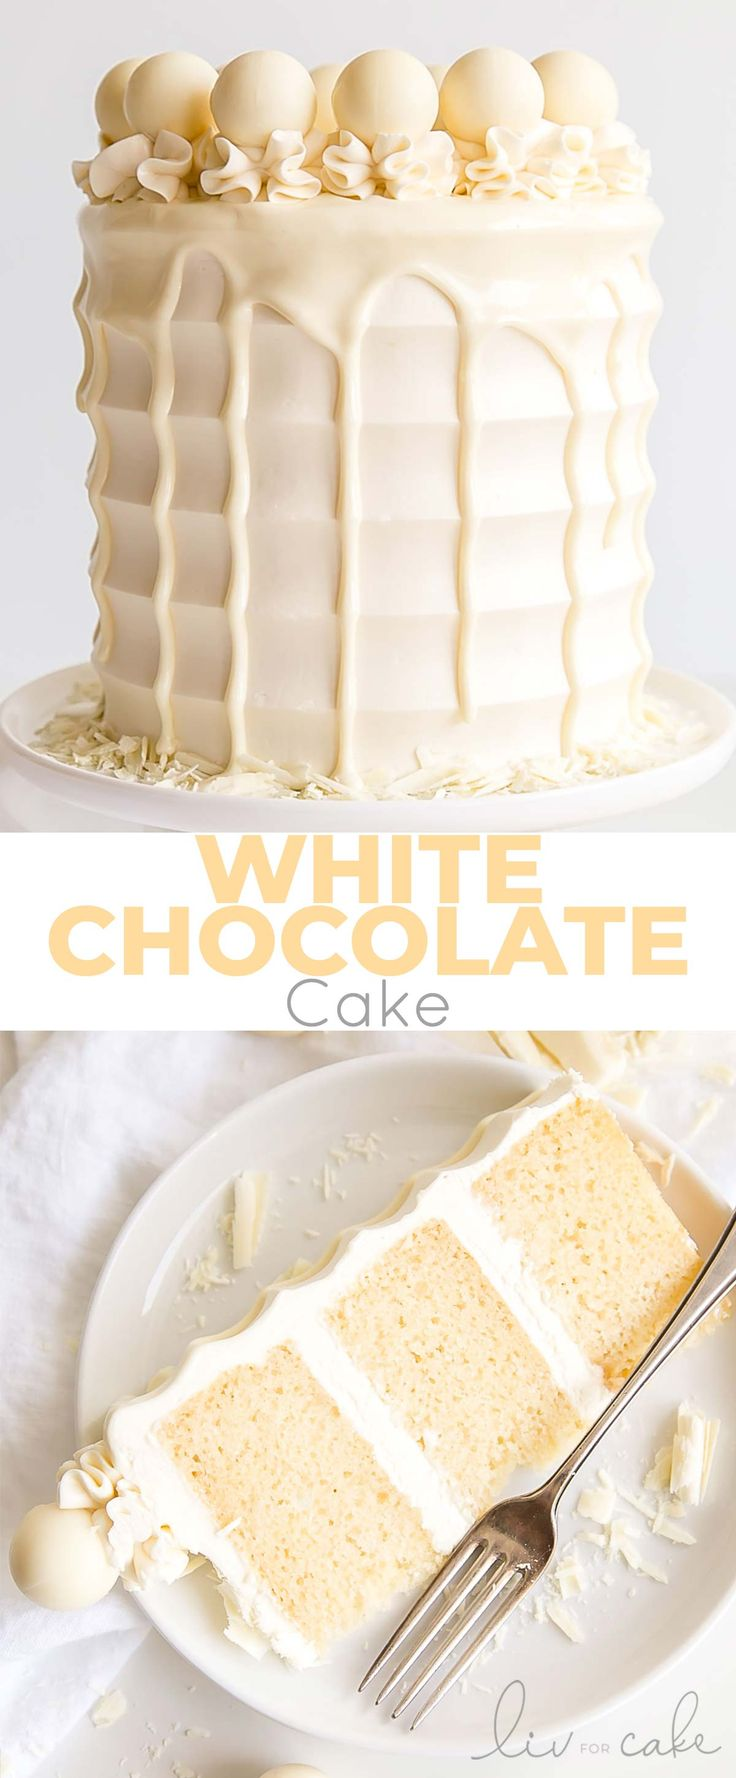 This White Chocolate Cake is both decadent and del…